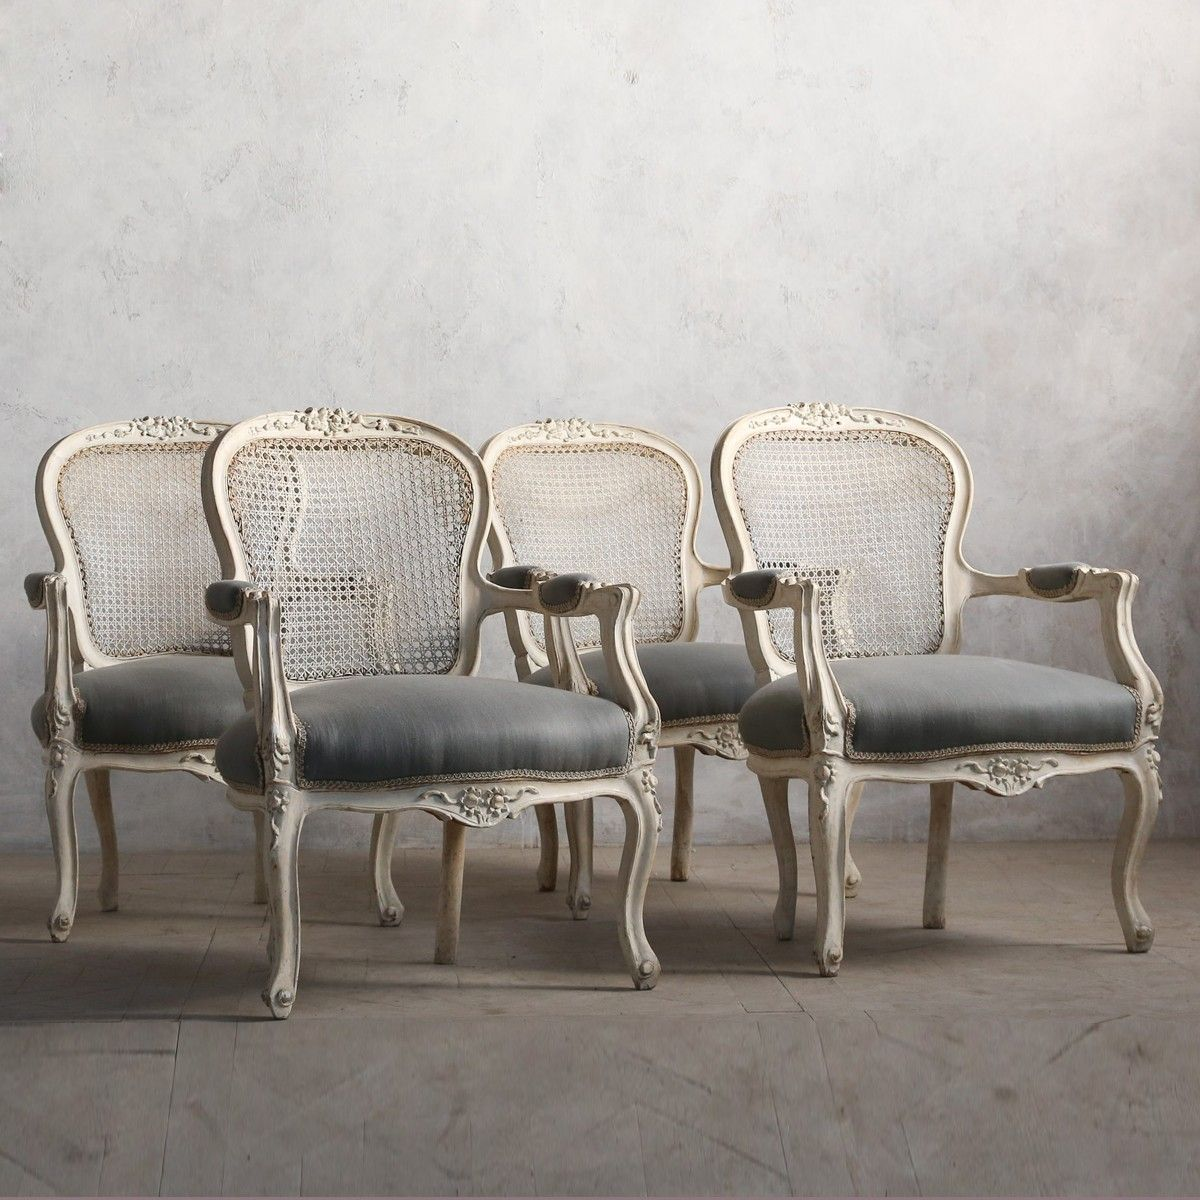 Darling vintage Louis XV armchairs in a weathered white ...